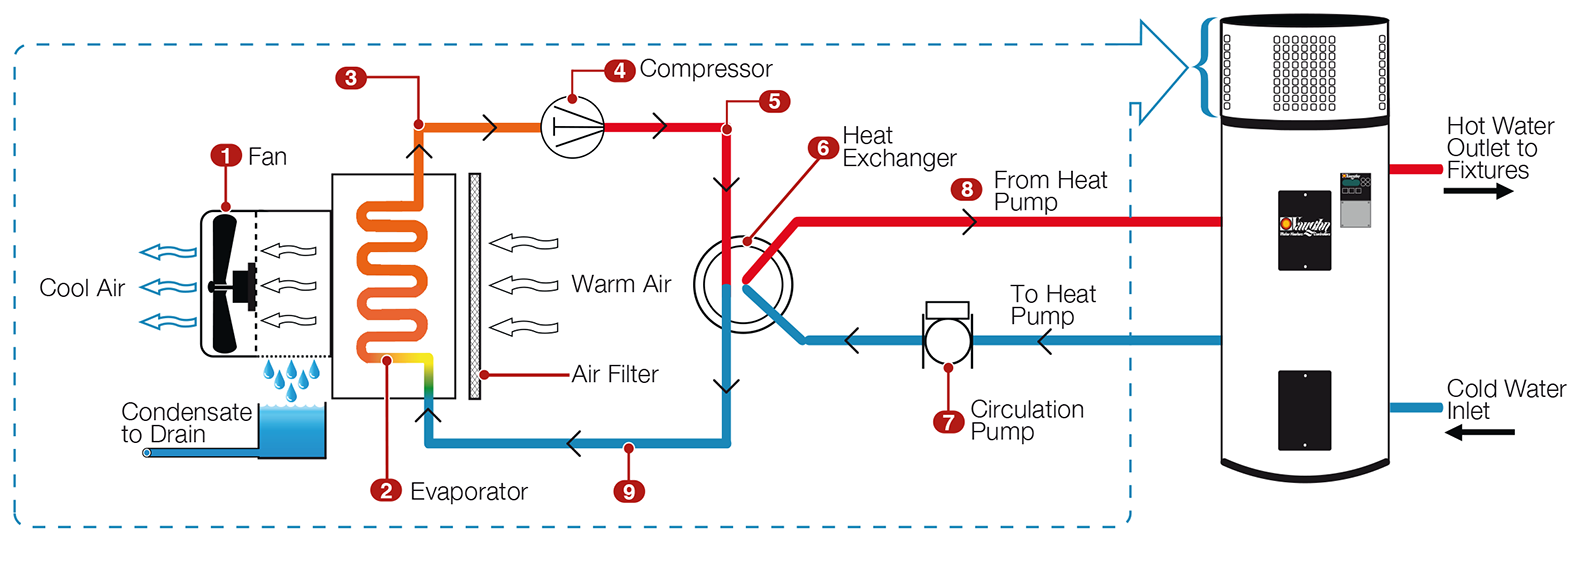 High Efficiency Electric Water Heater Vaughn – Lg Heat Pump Wiring Diagram